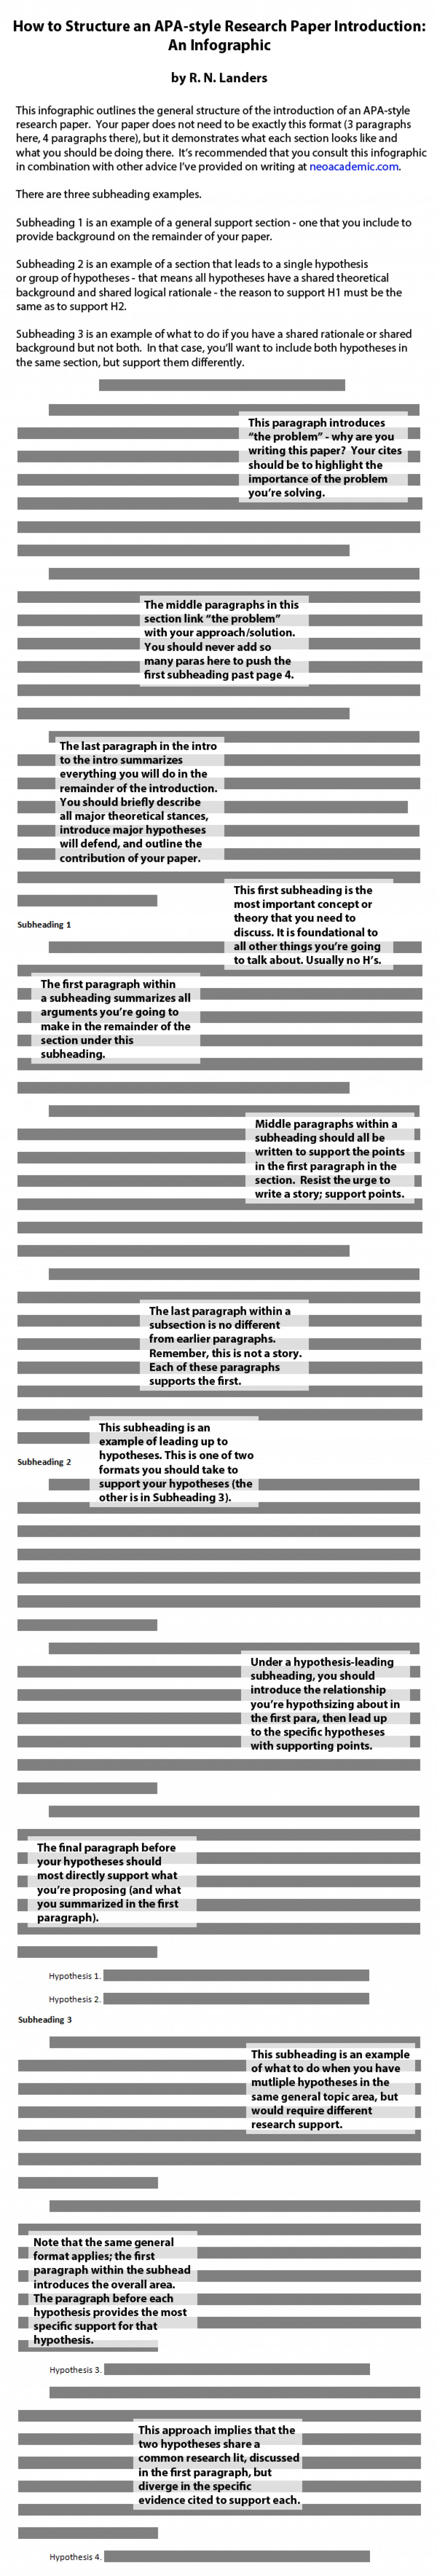 002 Intro Infographic2 Research Paper How To Write An Introduction For Fearsome A Apa Large